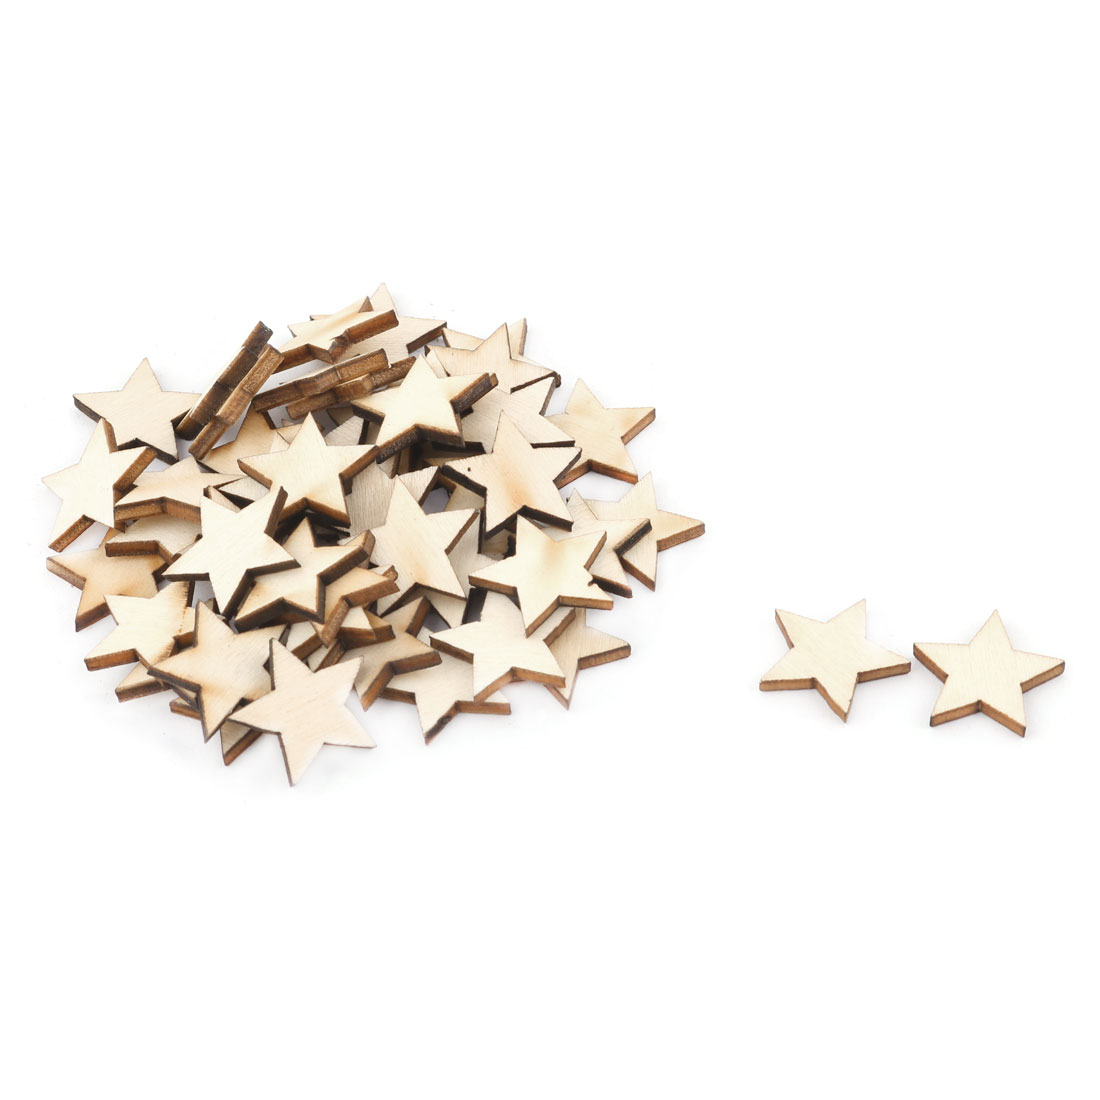 Unique Bargains Wooden Star Shaped DIY Craft Christmas Tree Ornaments Beige 20 x 20mm 50 Pcs